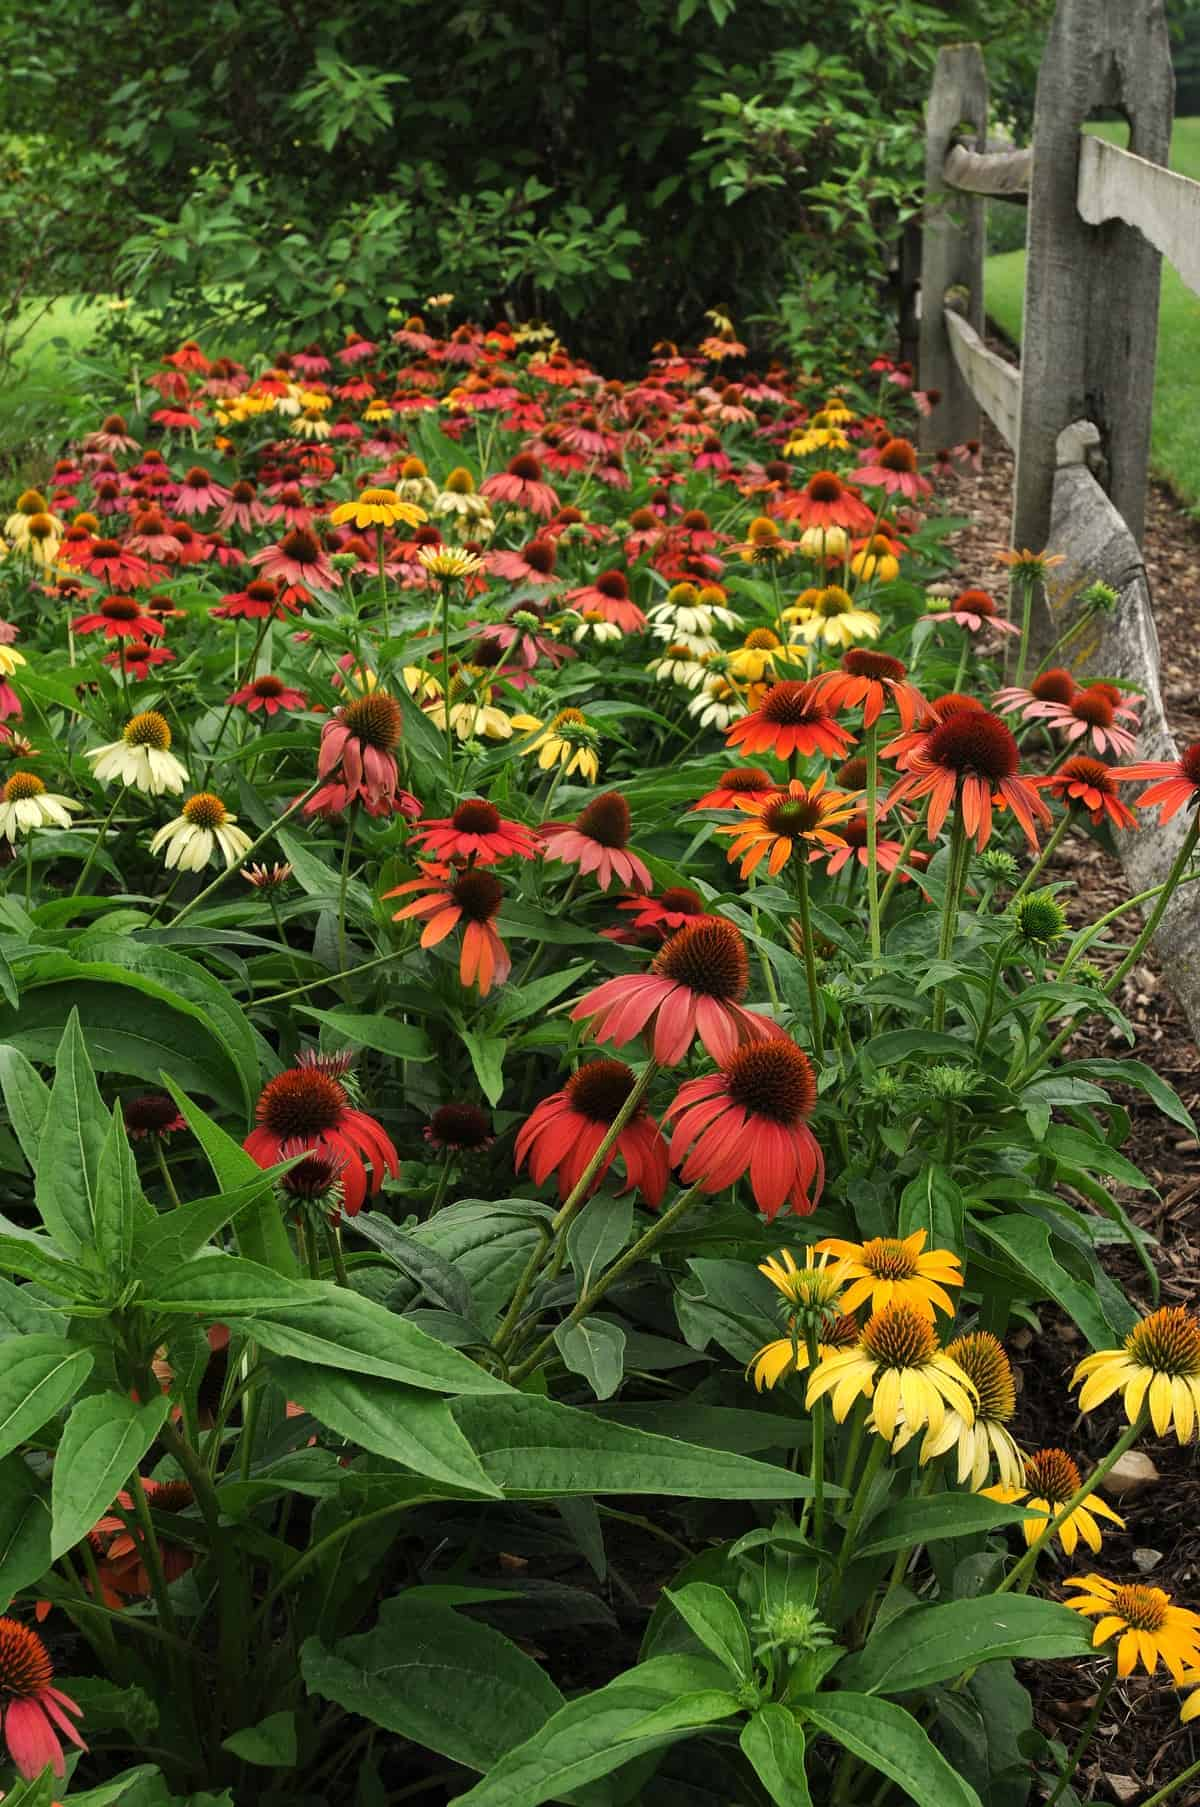 Echinacea Cheyenne Spirit 2017 Aas Flower Award Winner This Stunning First Year Flowering